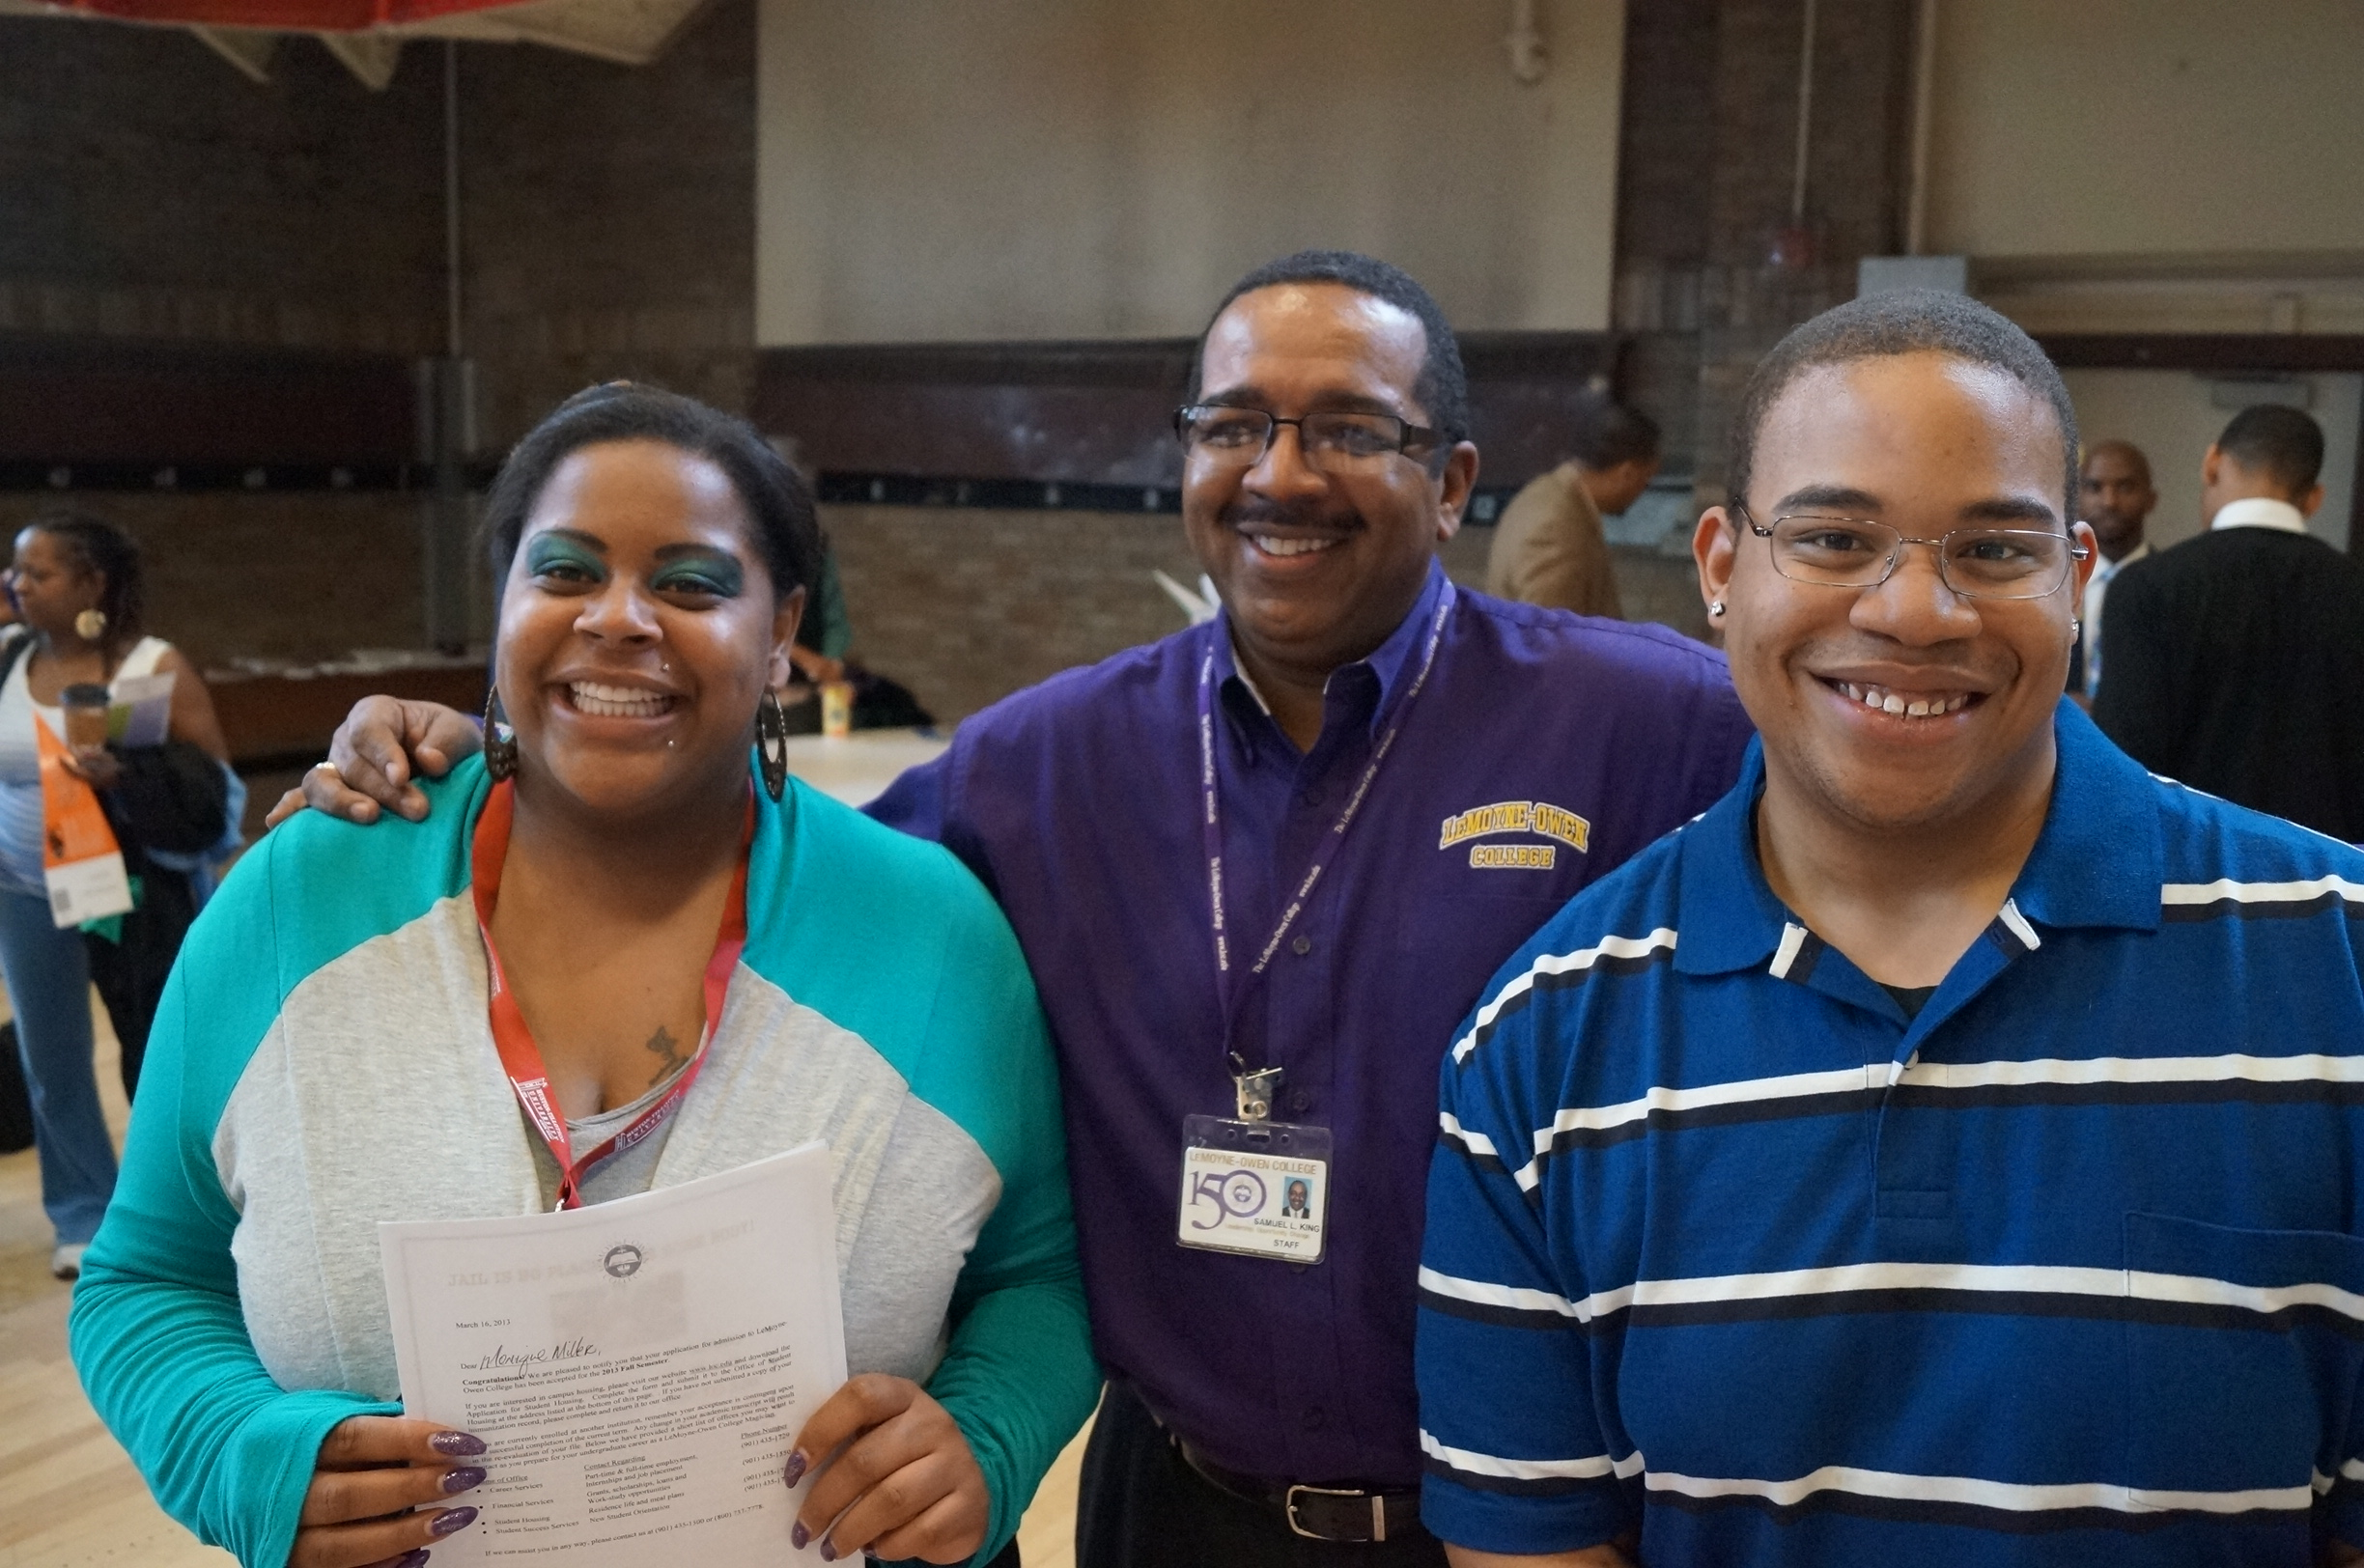 Parents and Son at College Fair